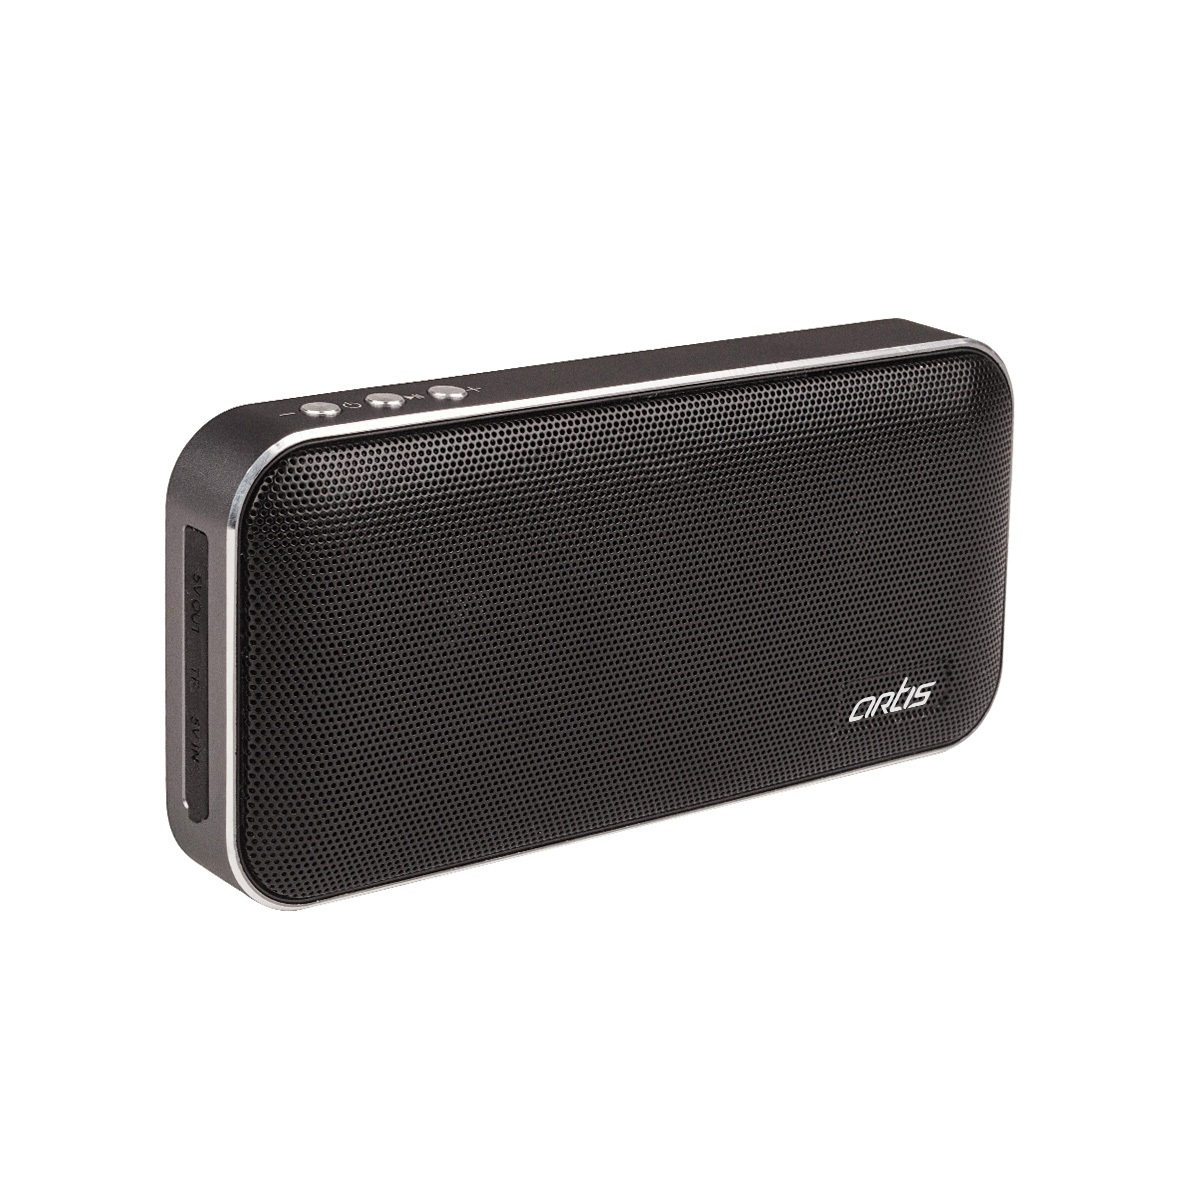 ARTIS BT36 WIRELESS PORTABLE STEREO BLUETOOTH SPEAKER WITH MIC. FOR HANDS FREE CALLING & TF CARD REA